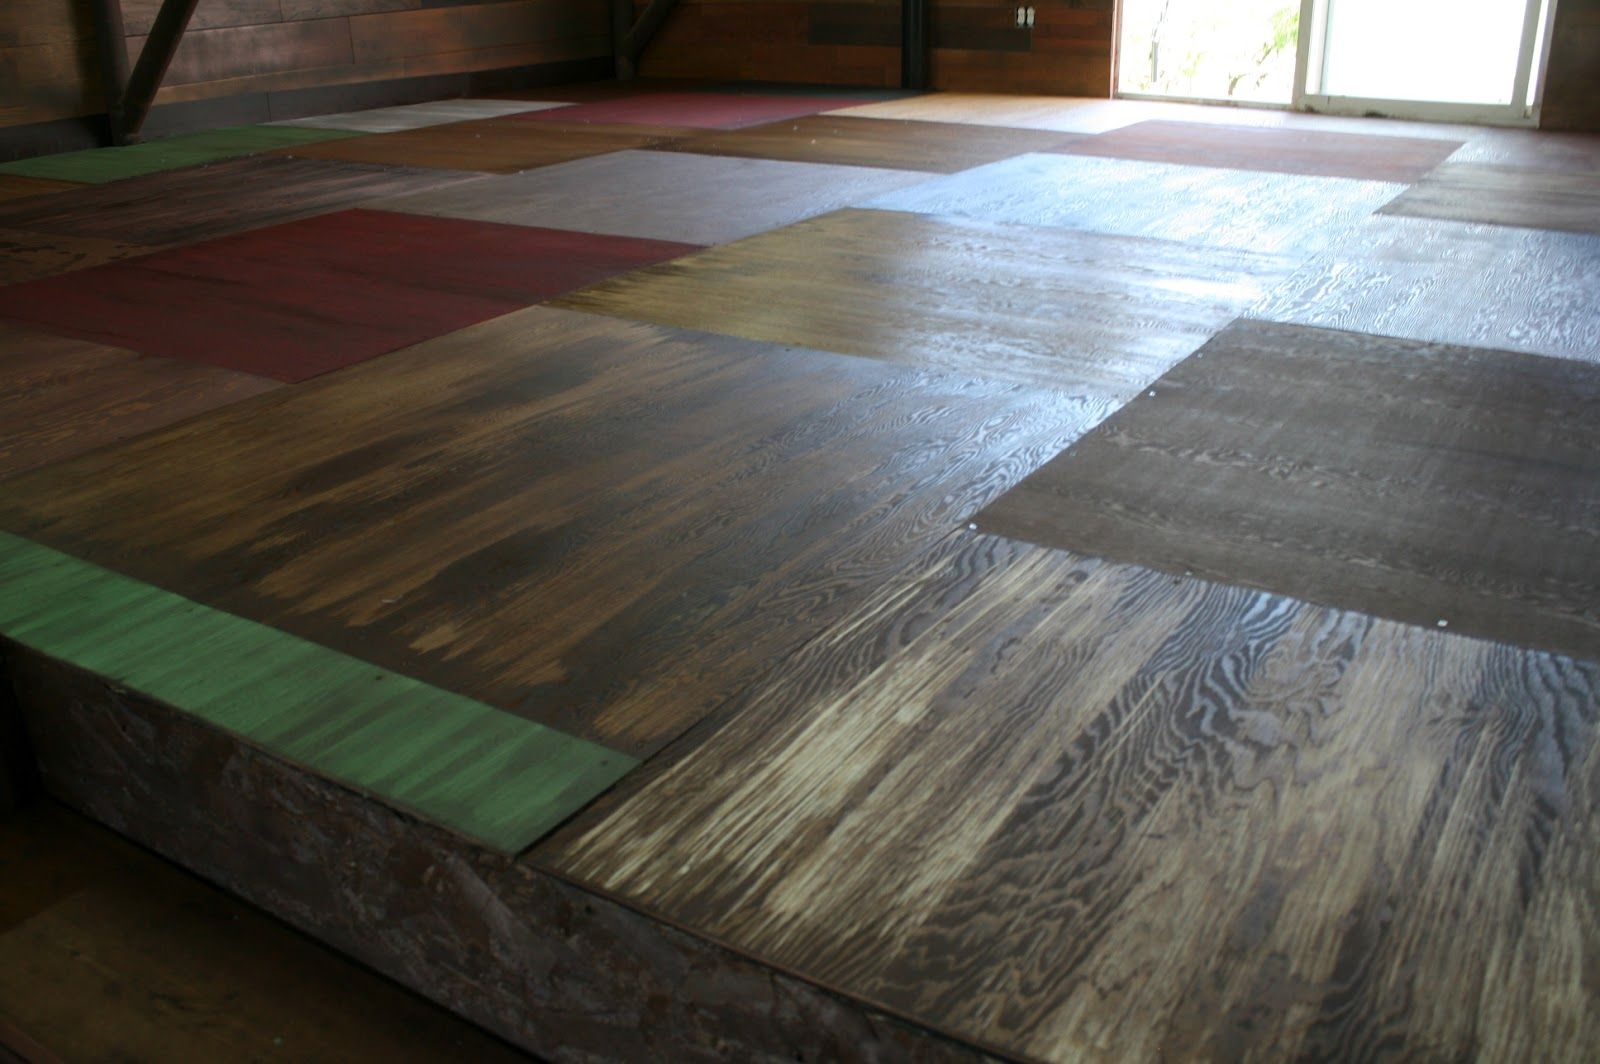 painted plywood floors  just floored over this one